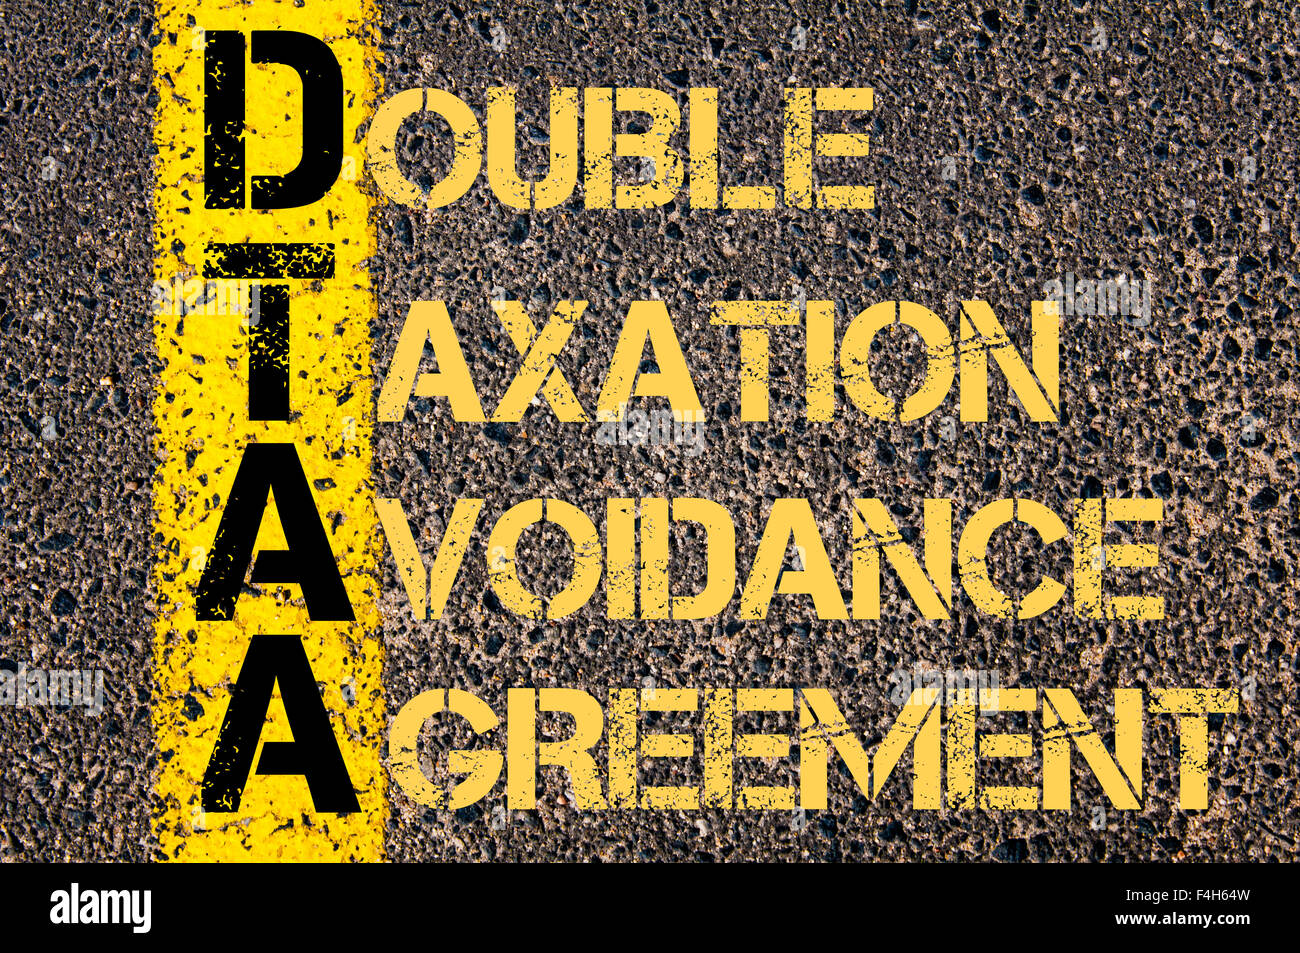 Concept image of business acronym dtaa as double taxation avoidance concept image of business acronym dtaa as double taxation avoidance agreement written over road marking yellow platinumwayz